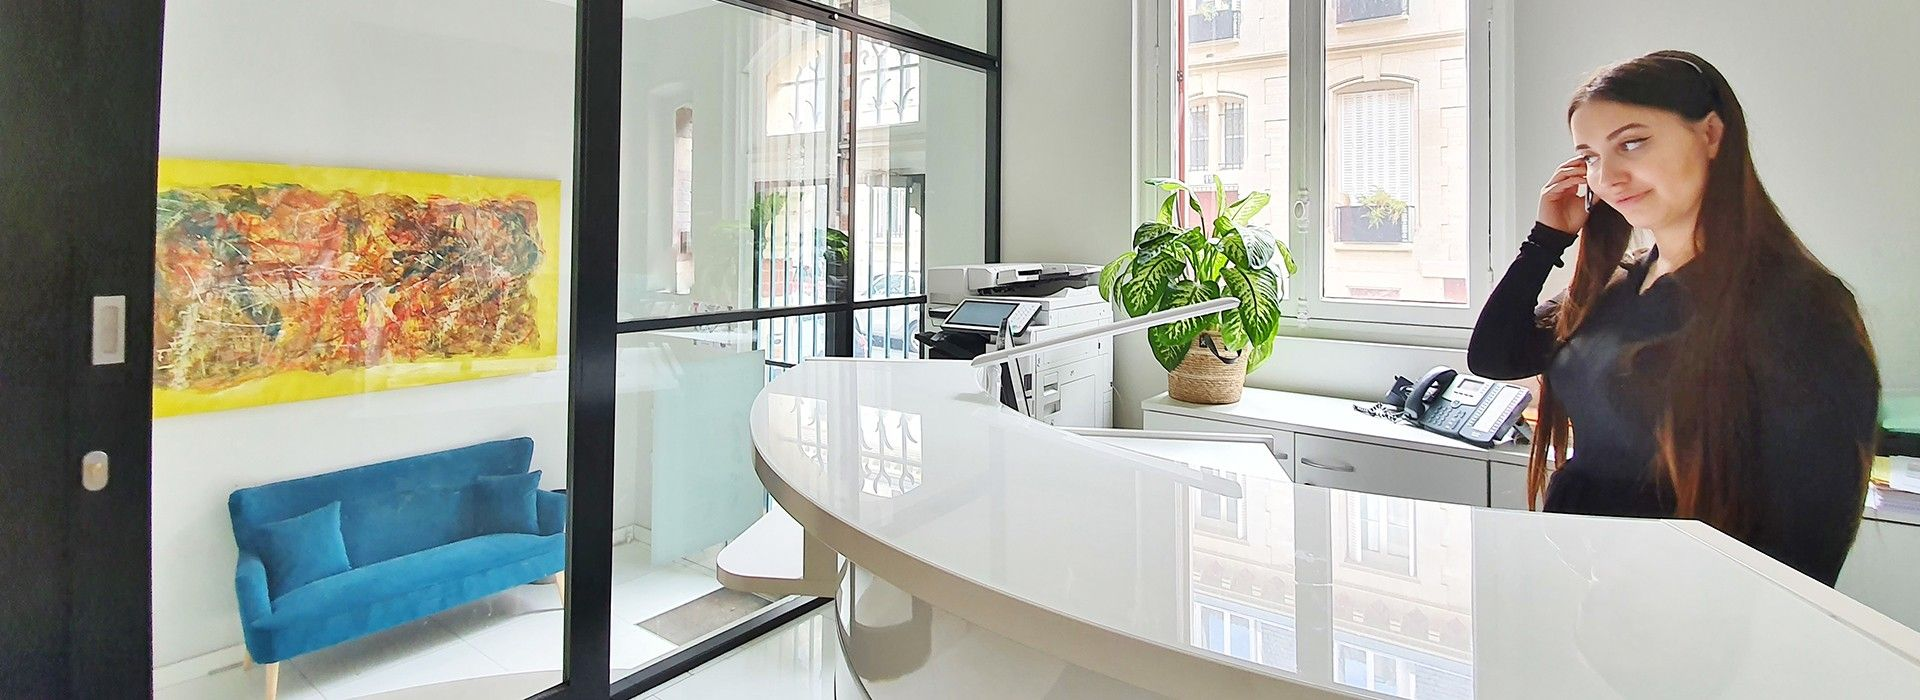 Achat vente appartement duplex loft appartement familial Paris 17 paris 16